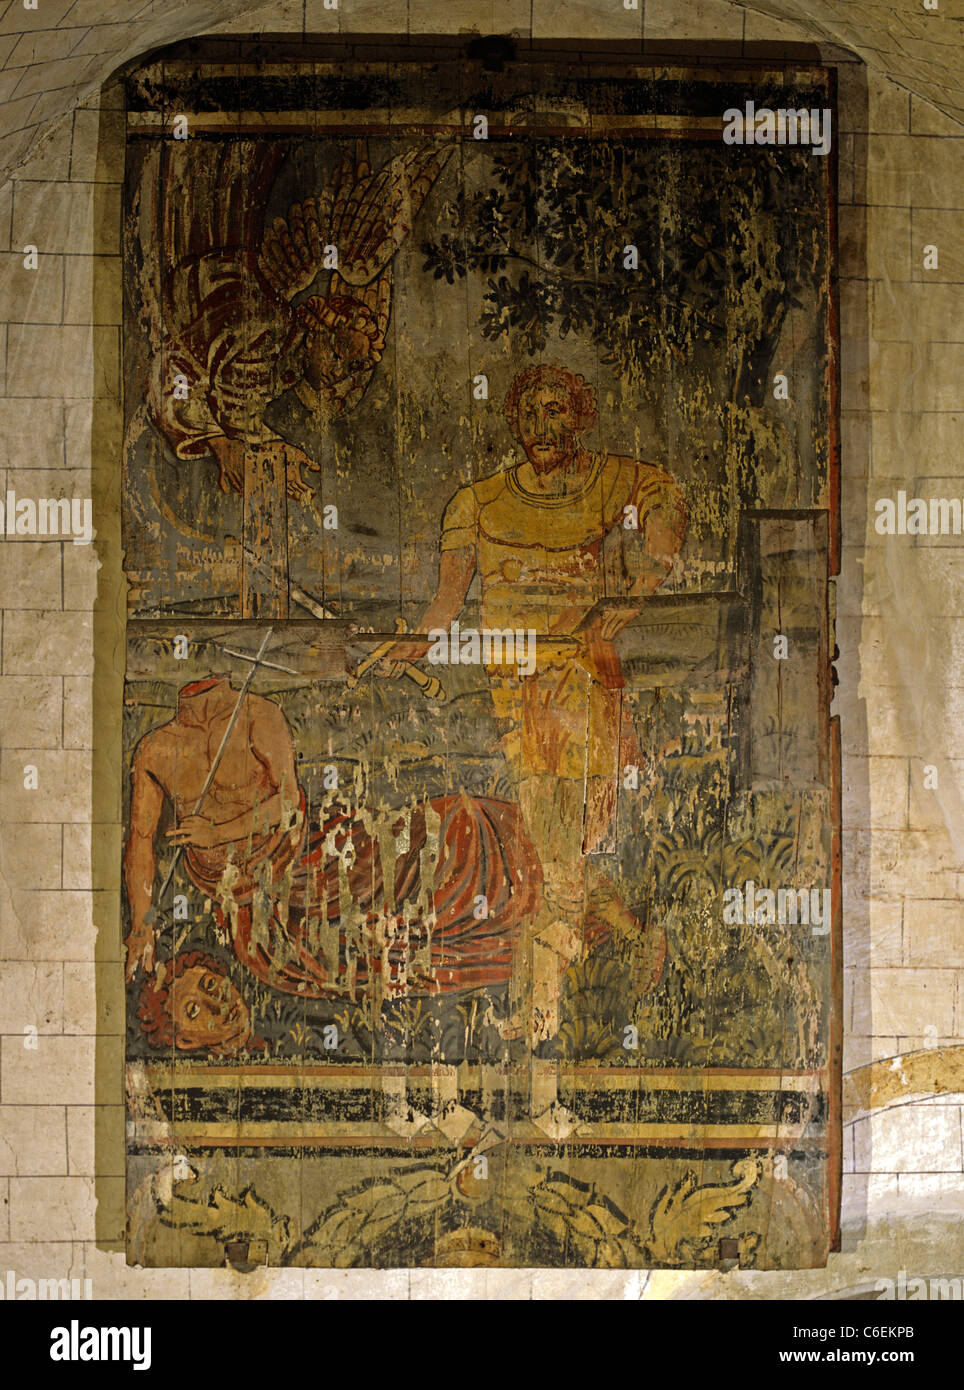 The beheading of Alban, the first British Martyr. Painted wooden panel in St Alban's Cathedral c. 1530 - Stock Image